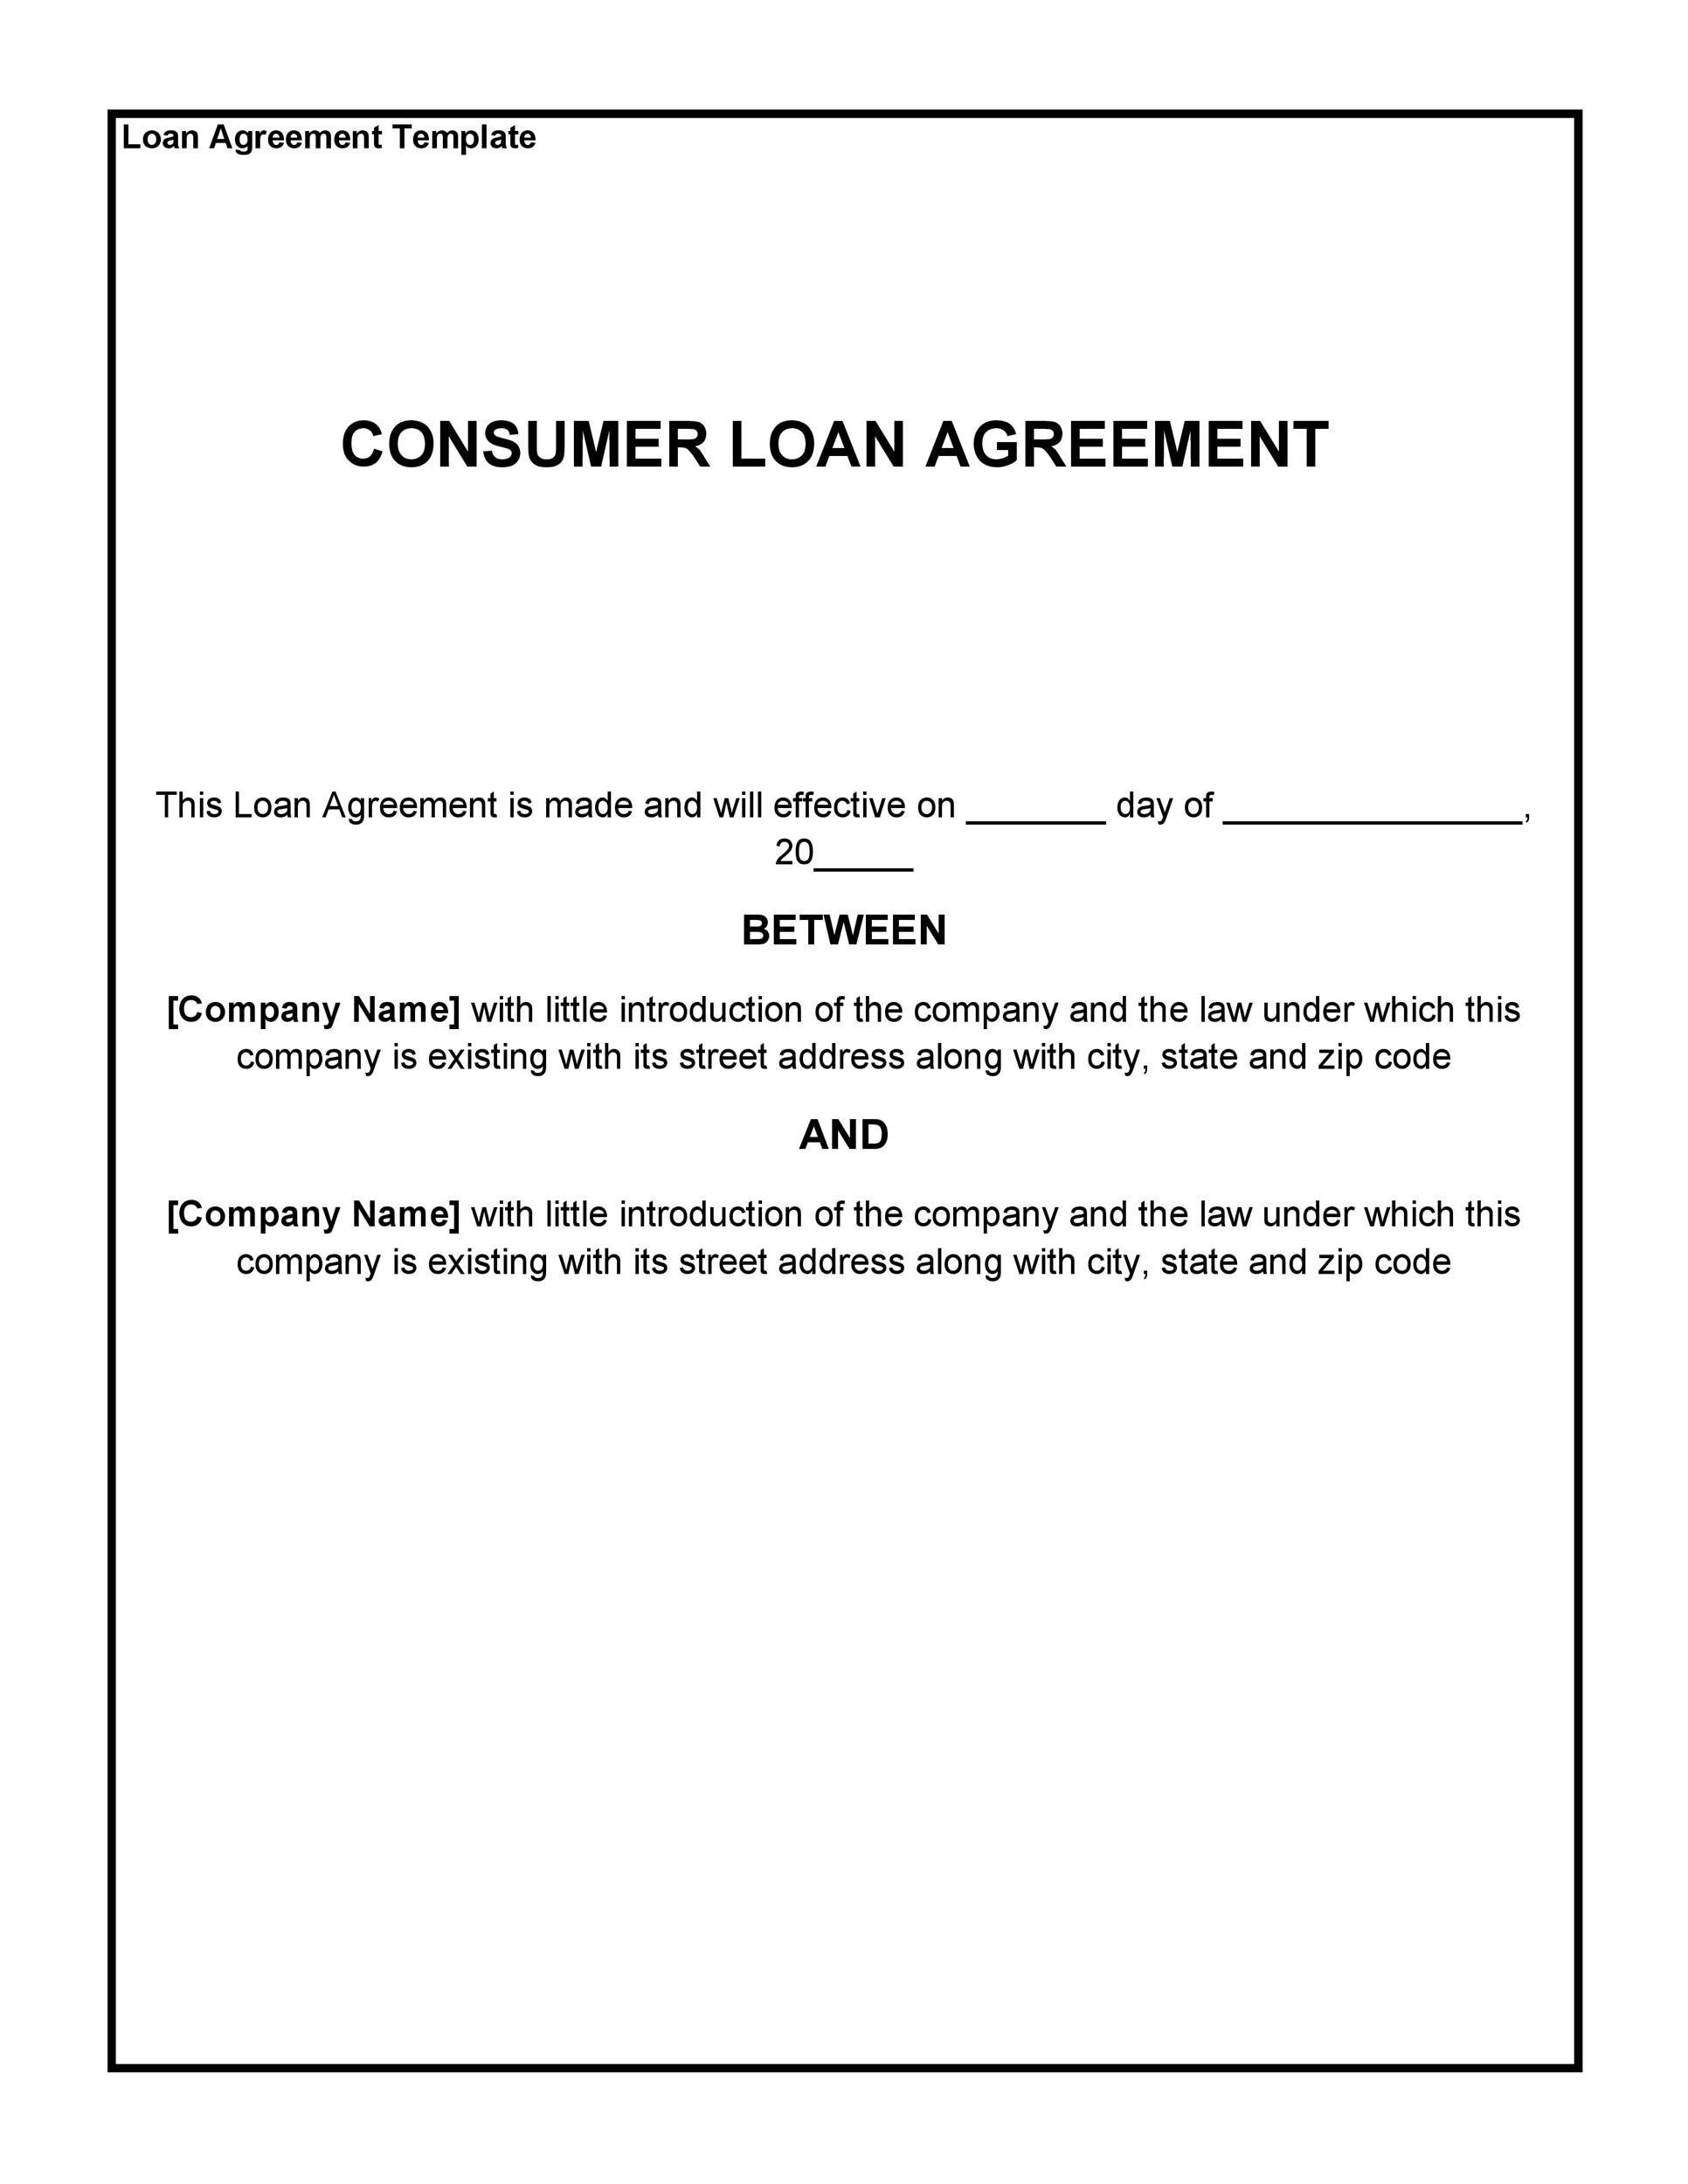 Consumer Loan Agreement Template  Personal Loan Agreement Template Microsoft Word